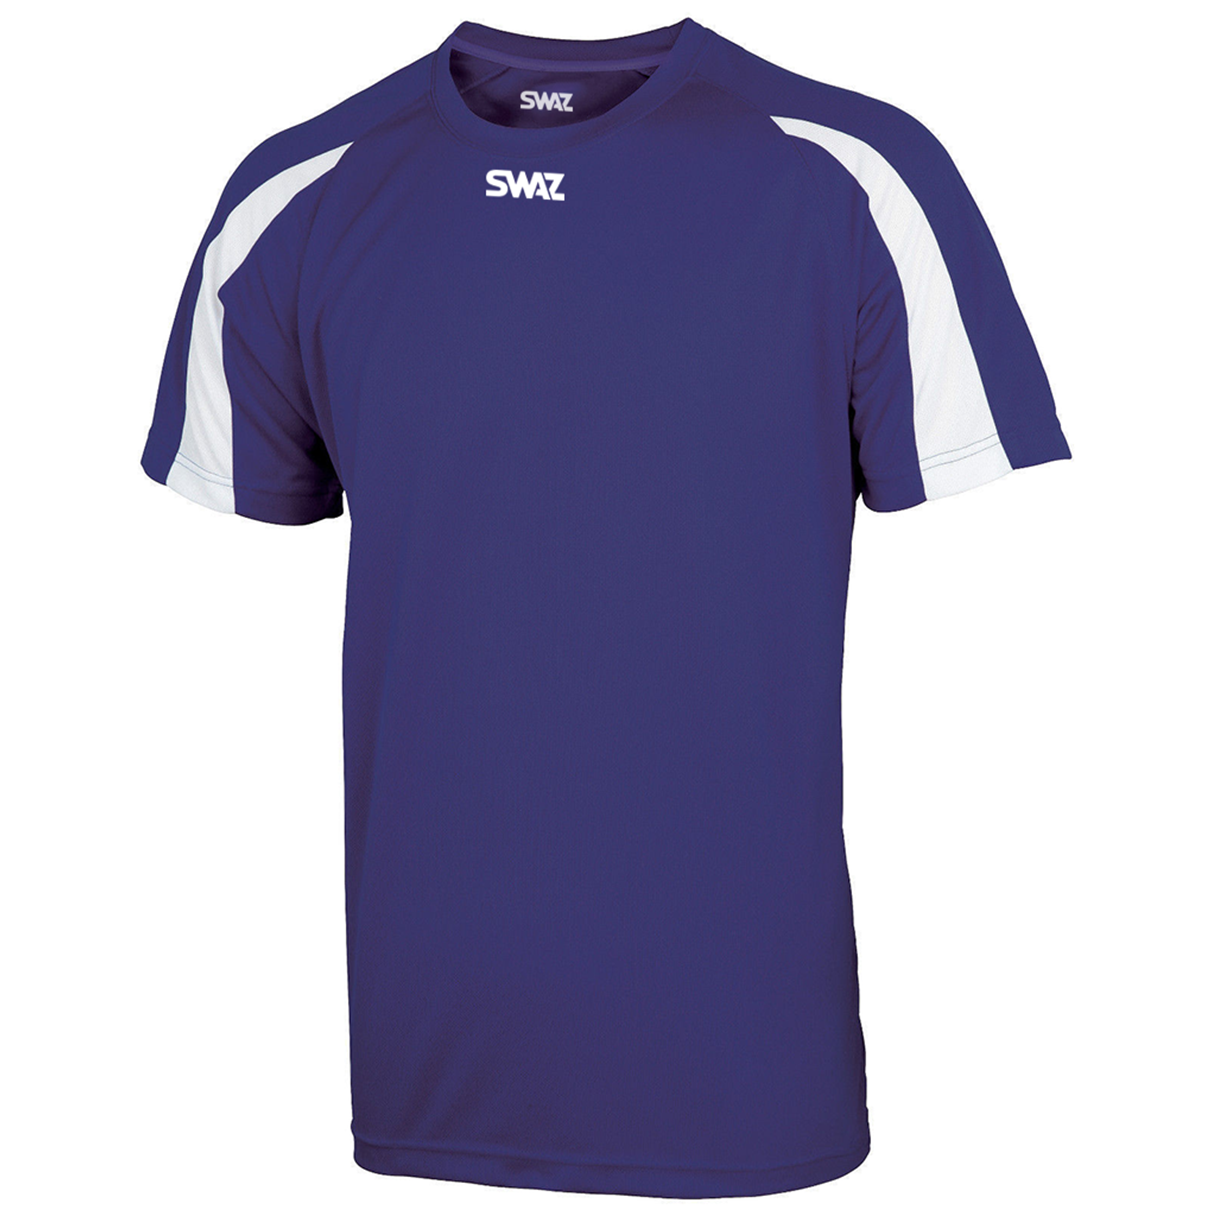 SWAZ Premier Training T-Shirt - Purple White Available in 5 Sizes dce0ddd56